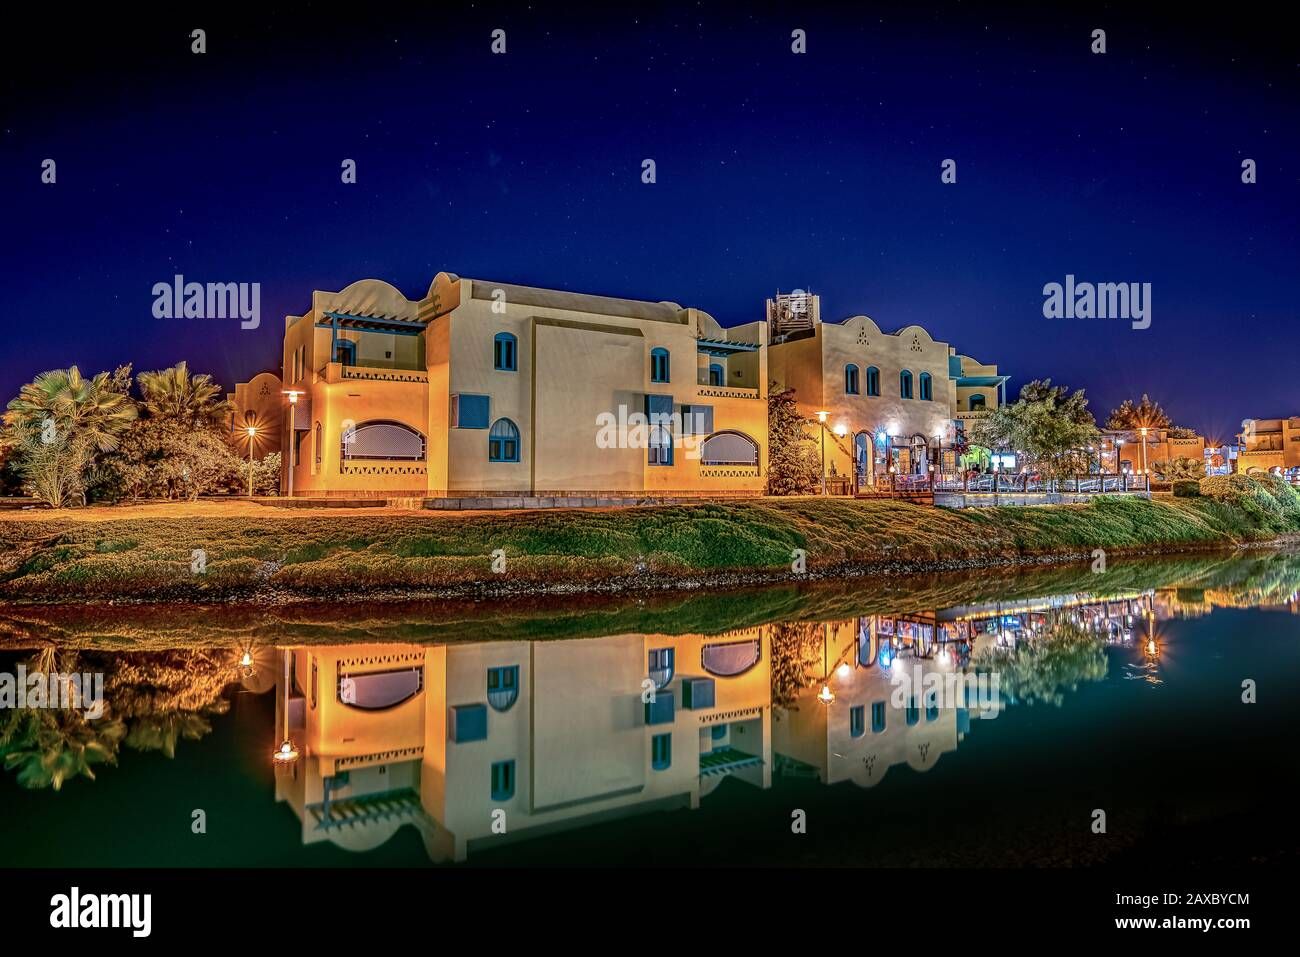 Egyptian houses at the side of the lagoon, reflecting in the water at night, el Gouna, Egypt, January 16, 2020 Stock Photo